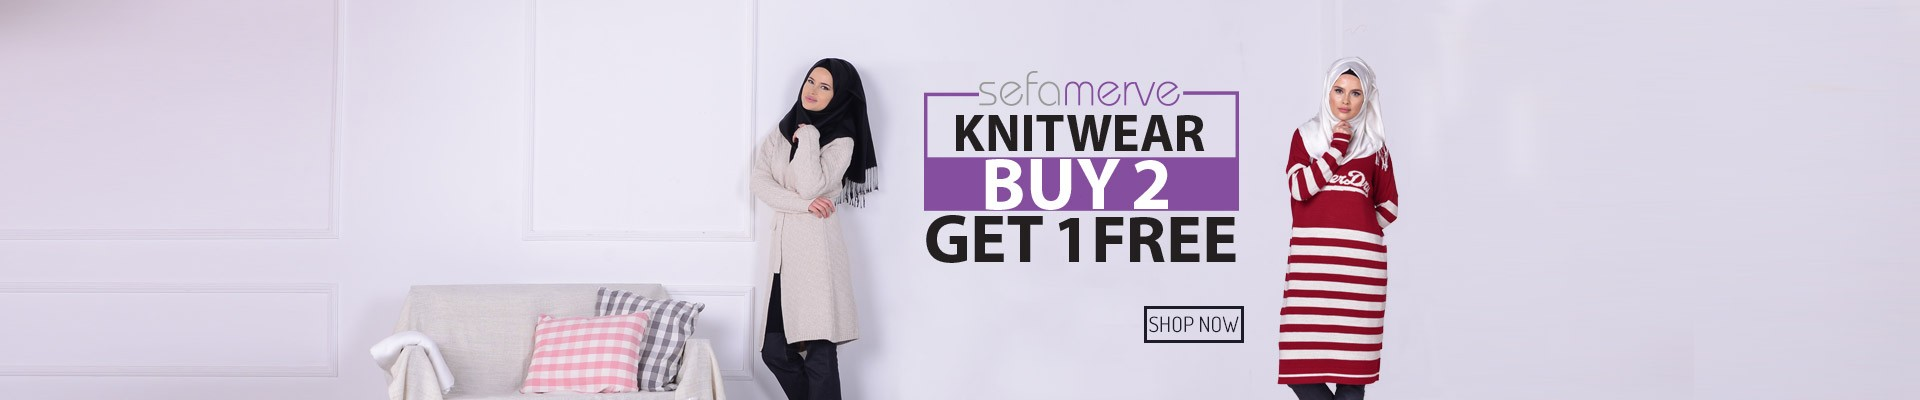 Buy 2 knitwear Get 1 for FREE